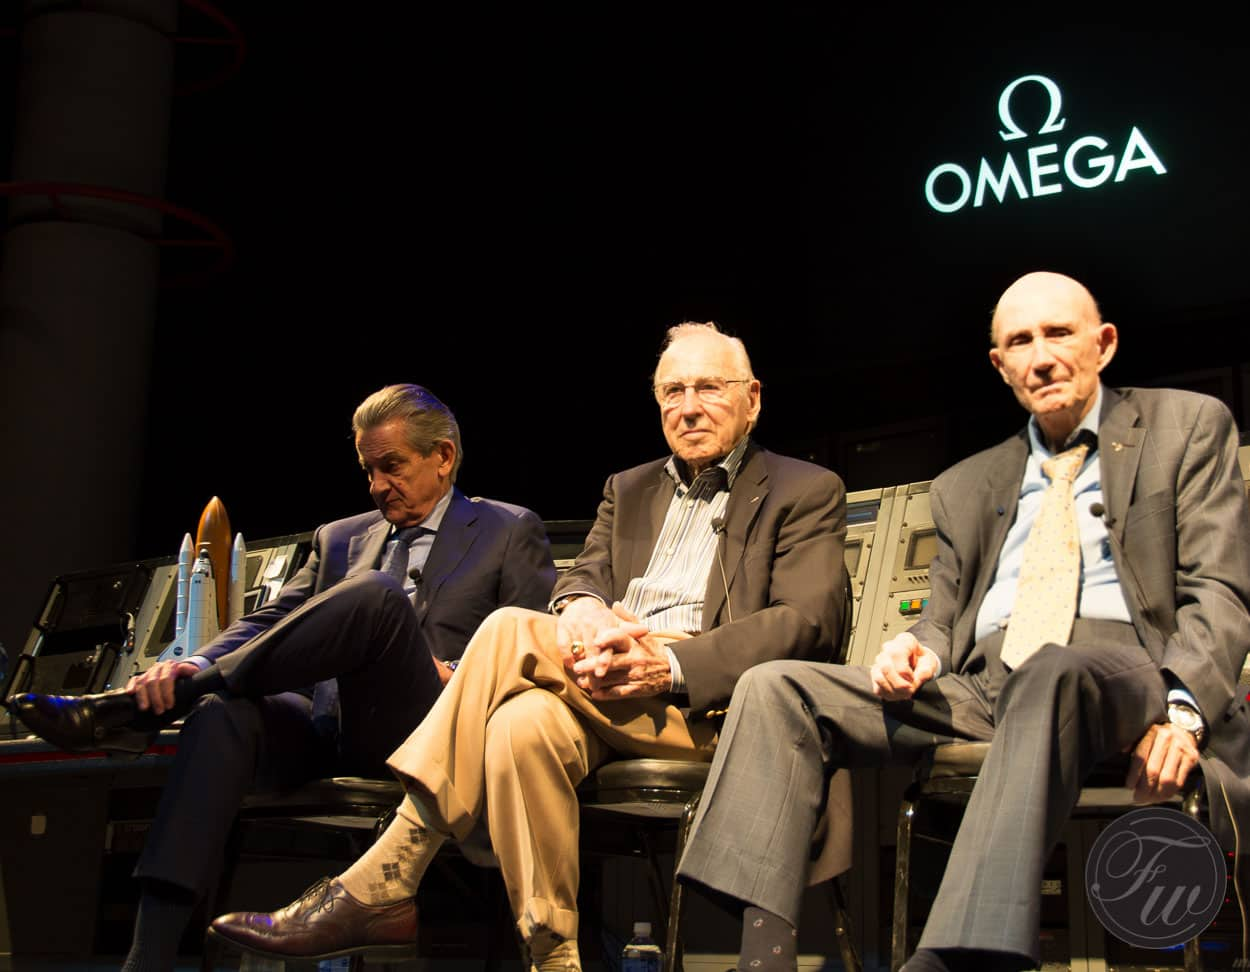 Omega CEO Urquhart, Astronauts Jim Lovell and Tom Stafford